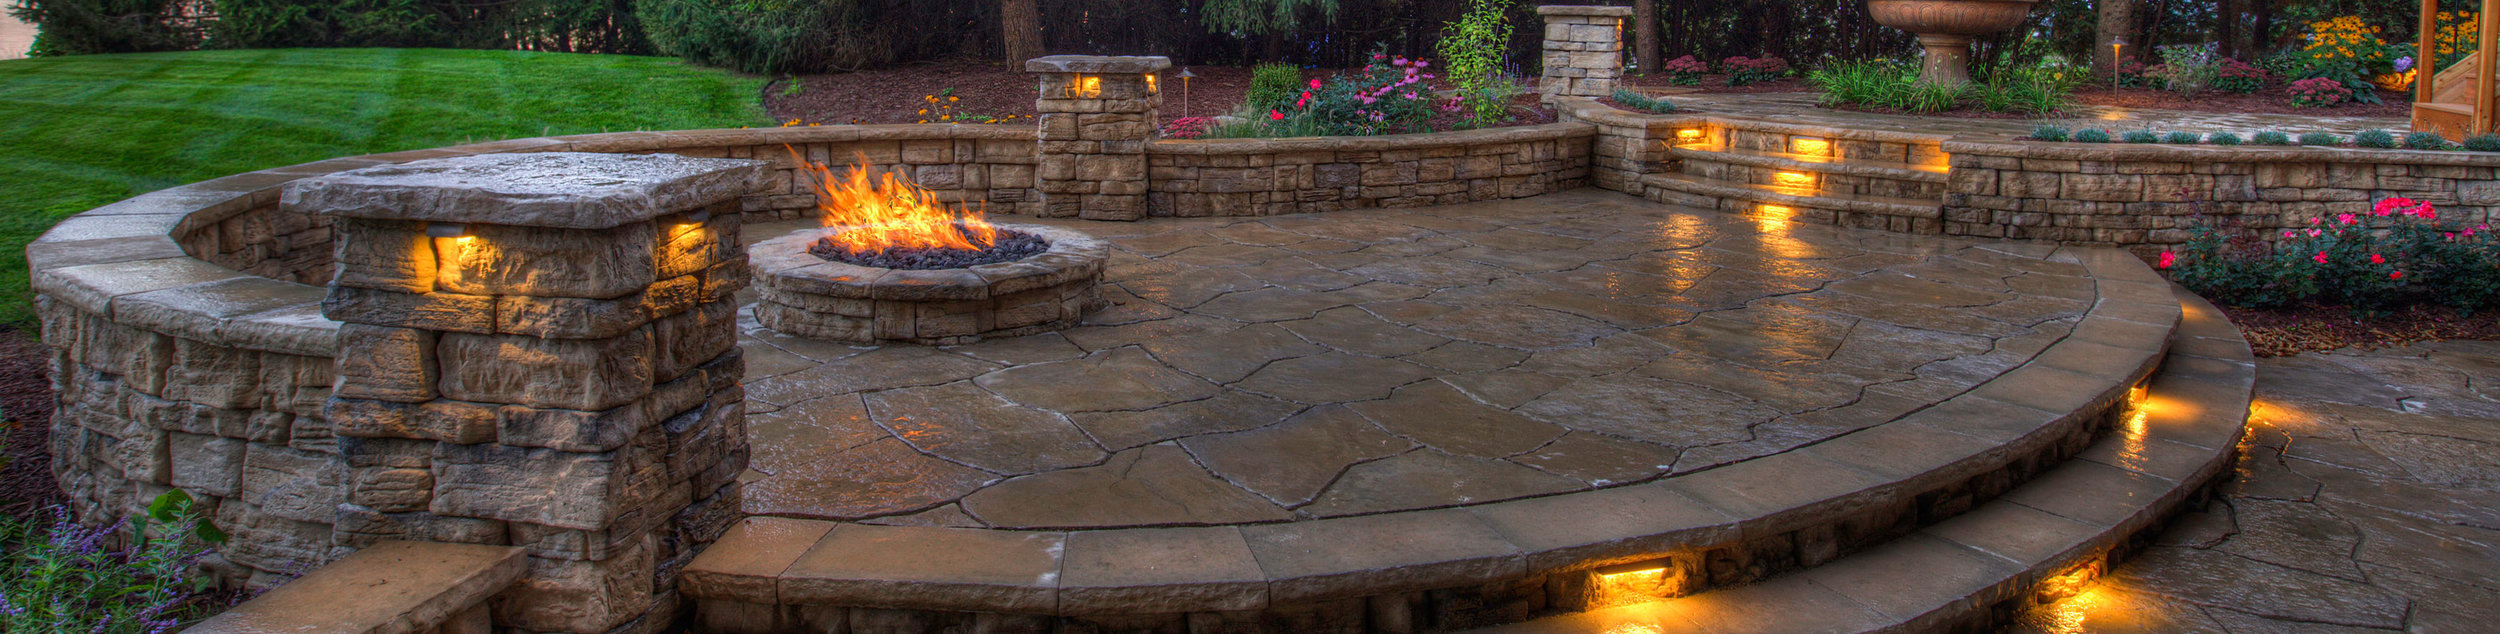 outdoor fireplaces and firepits view